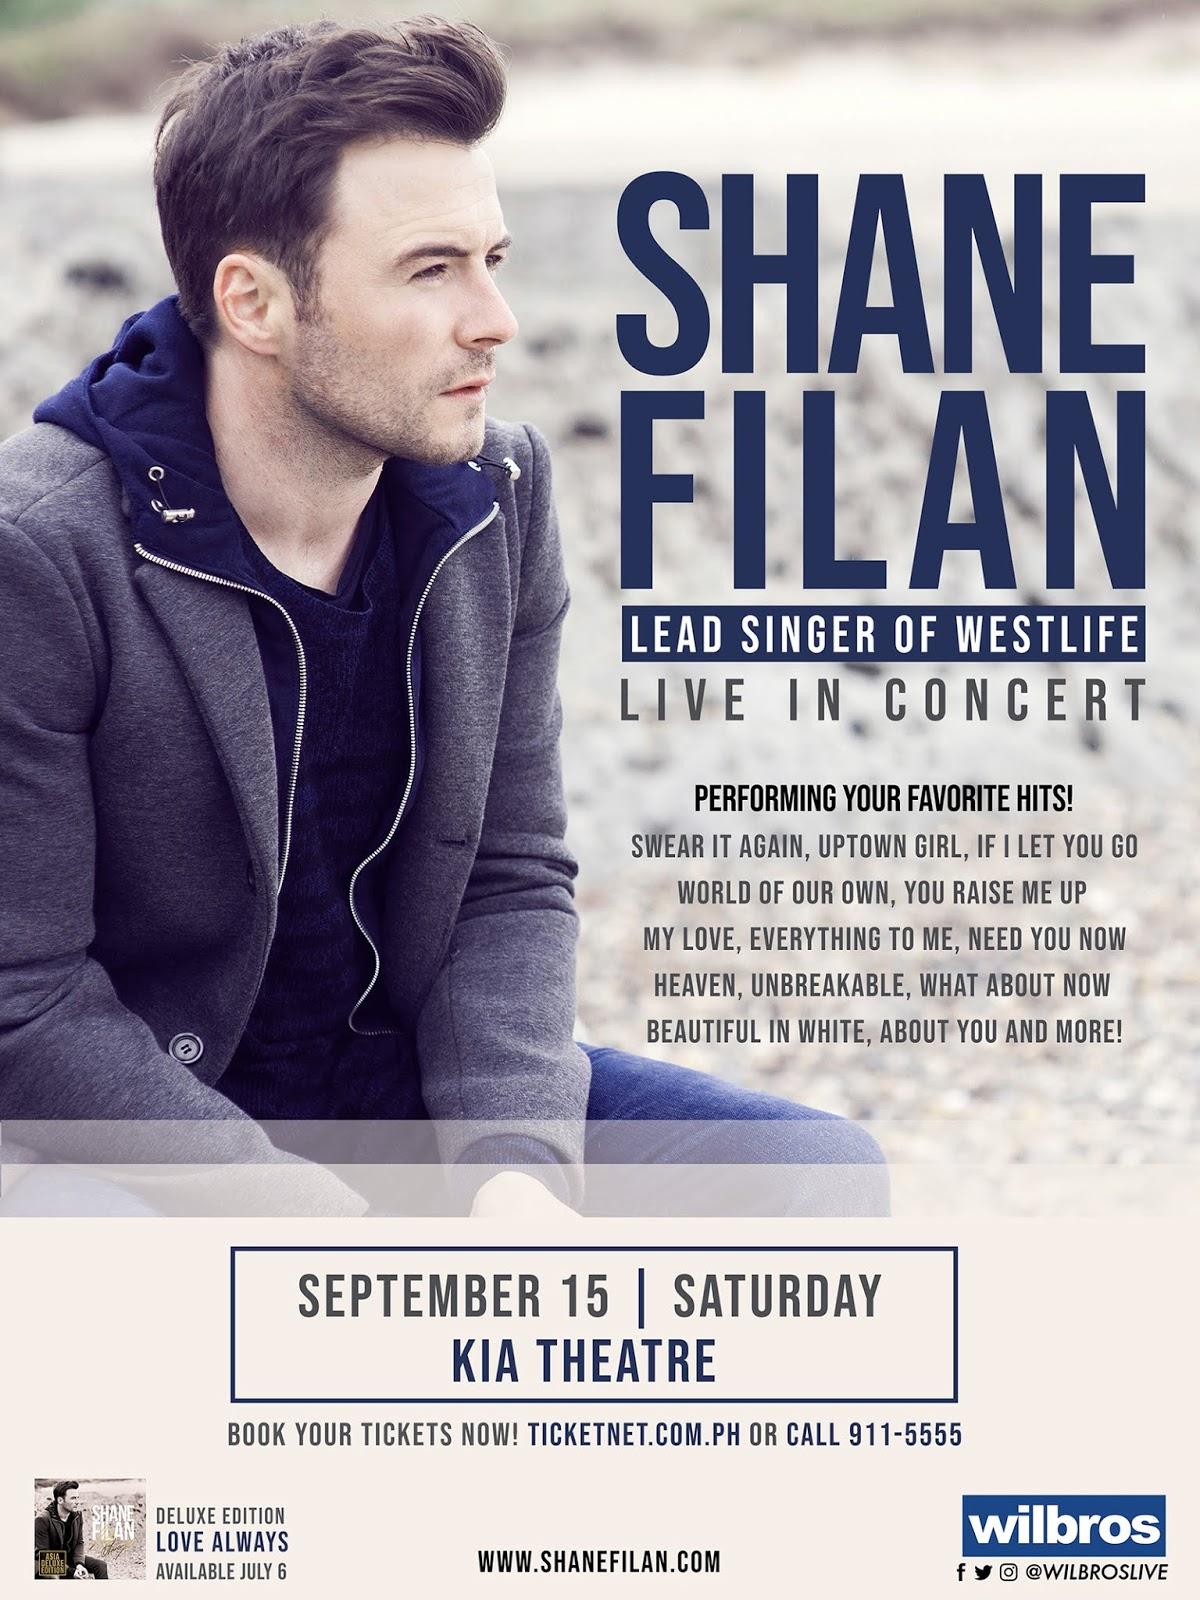 Westlife S Shane Filan Live In Kia Theater On September 15 Recycle